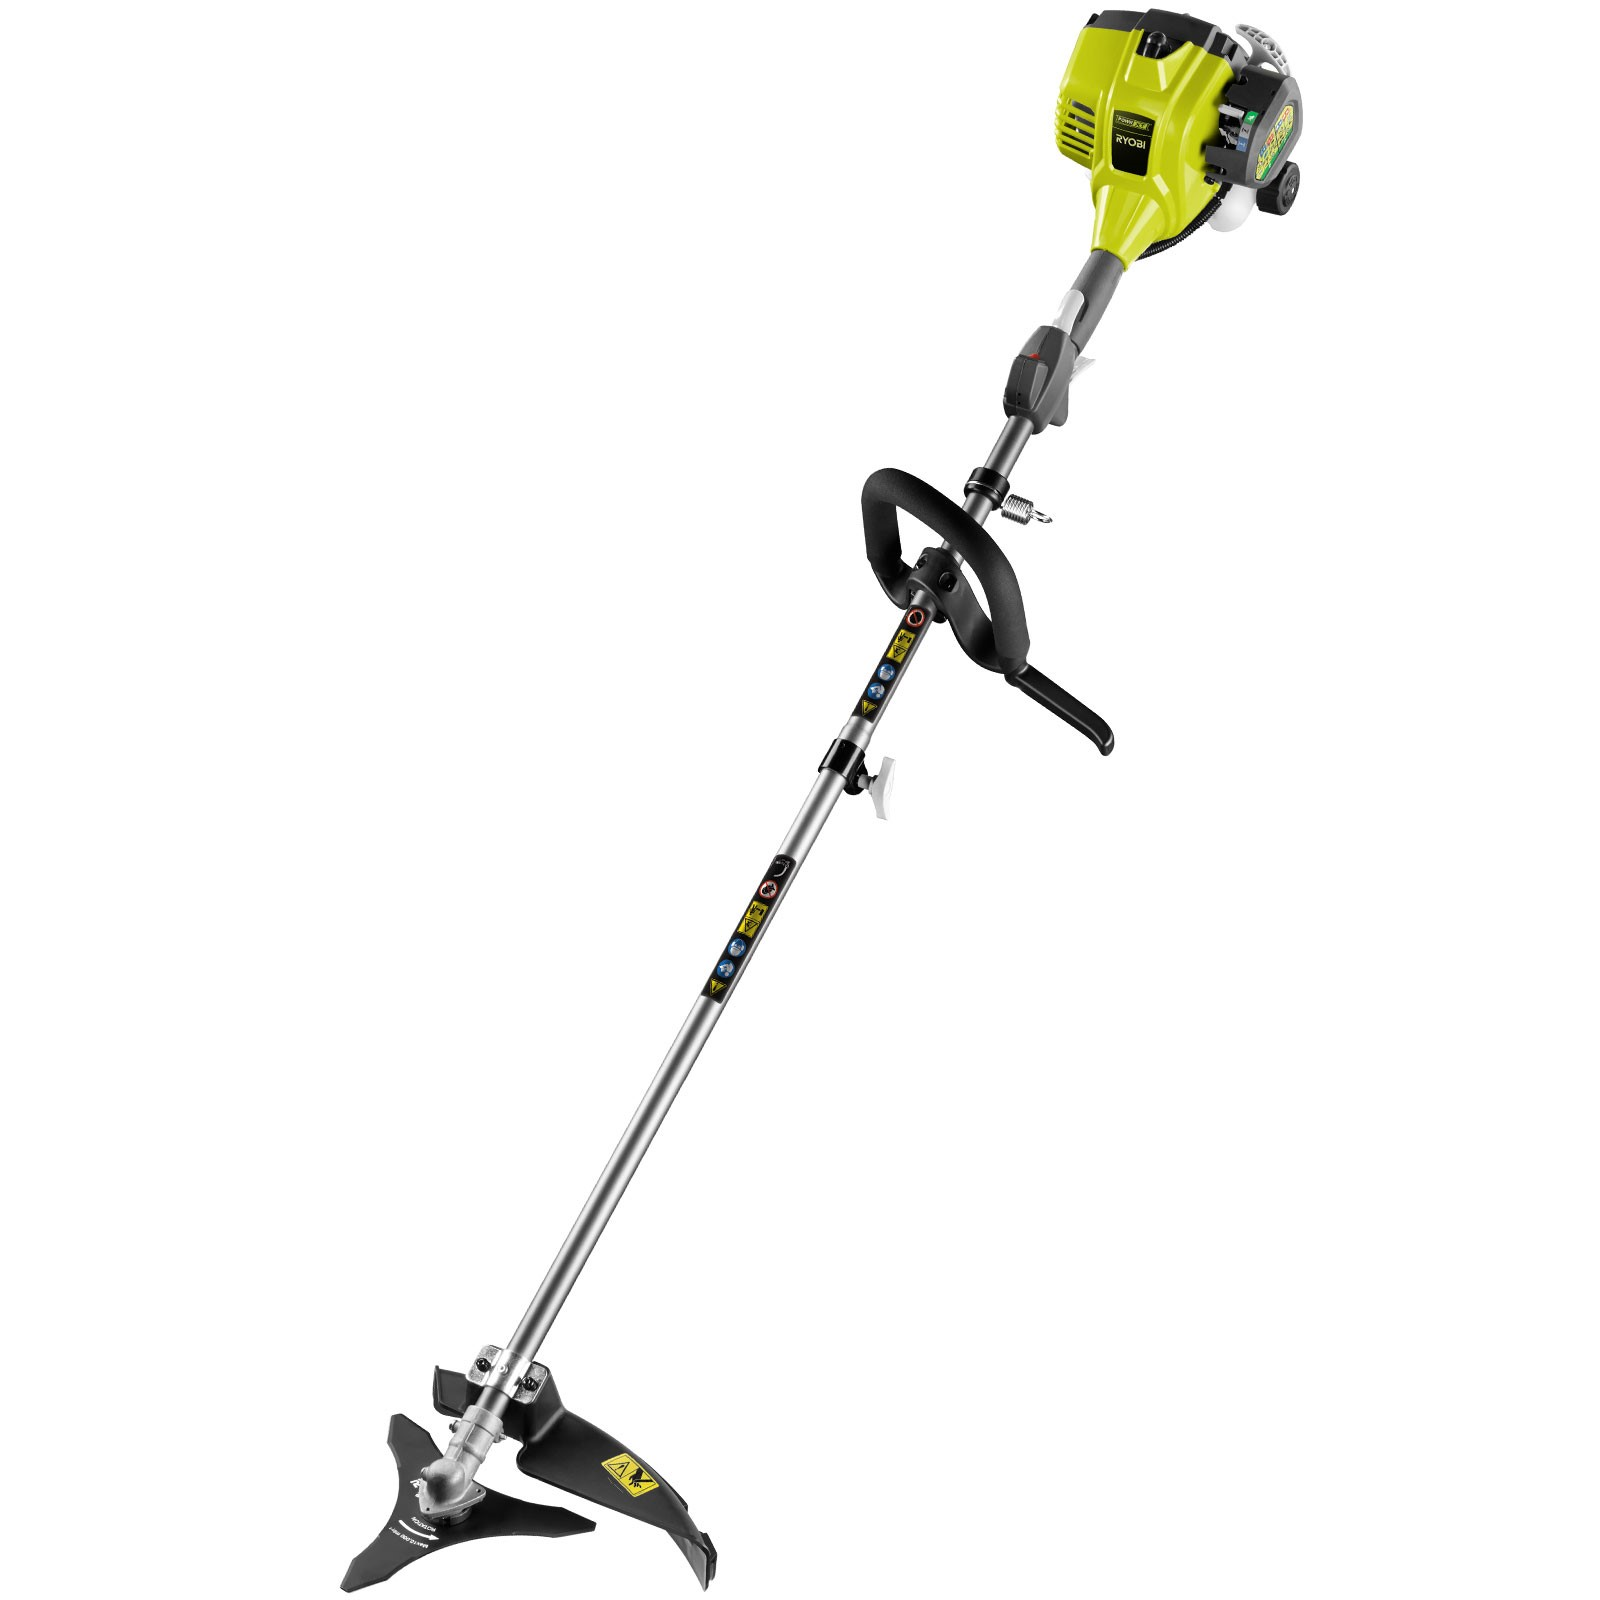 Ryobi Brushcutter Accessories Category